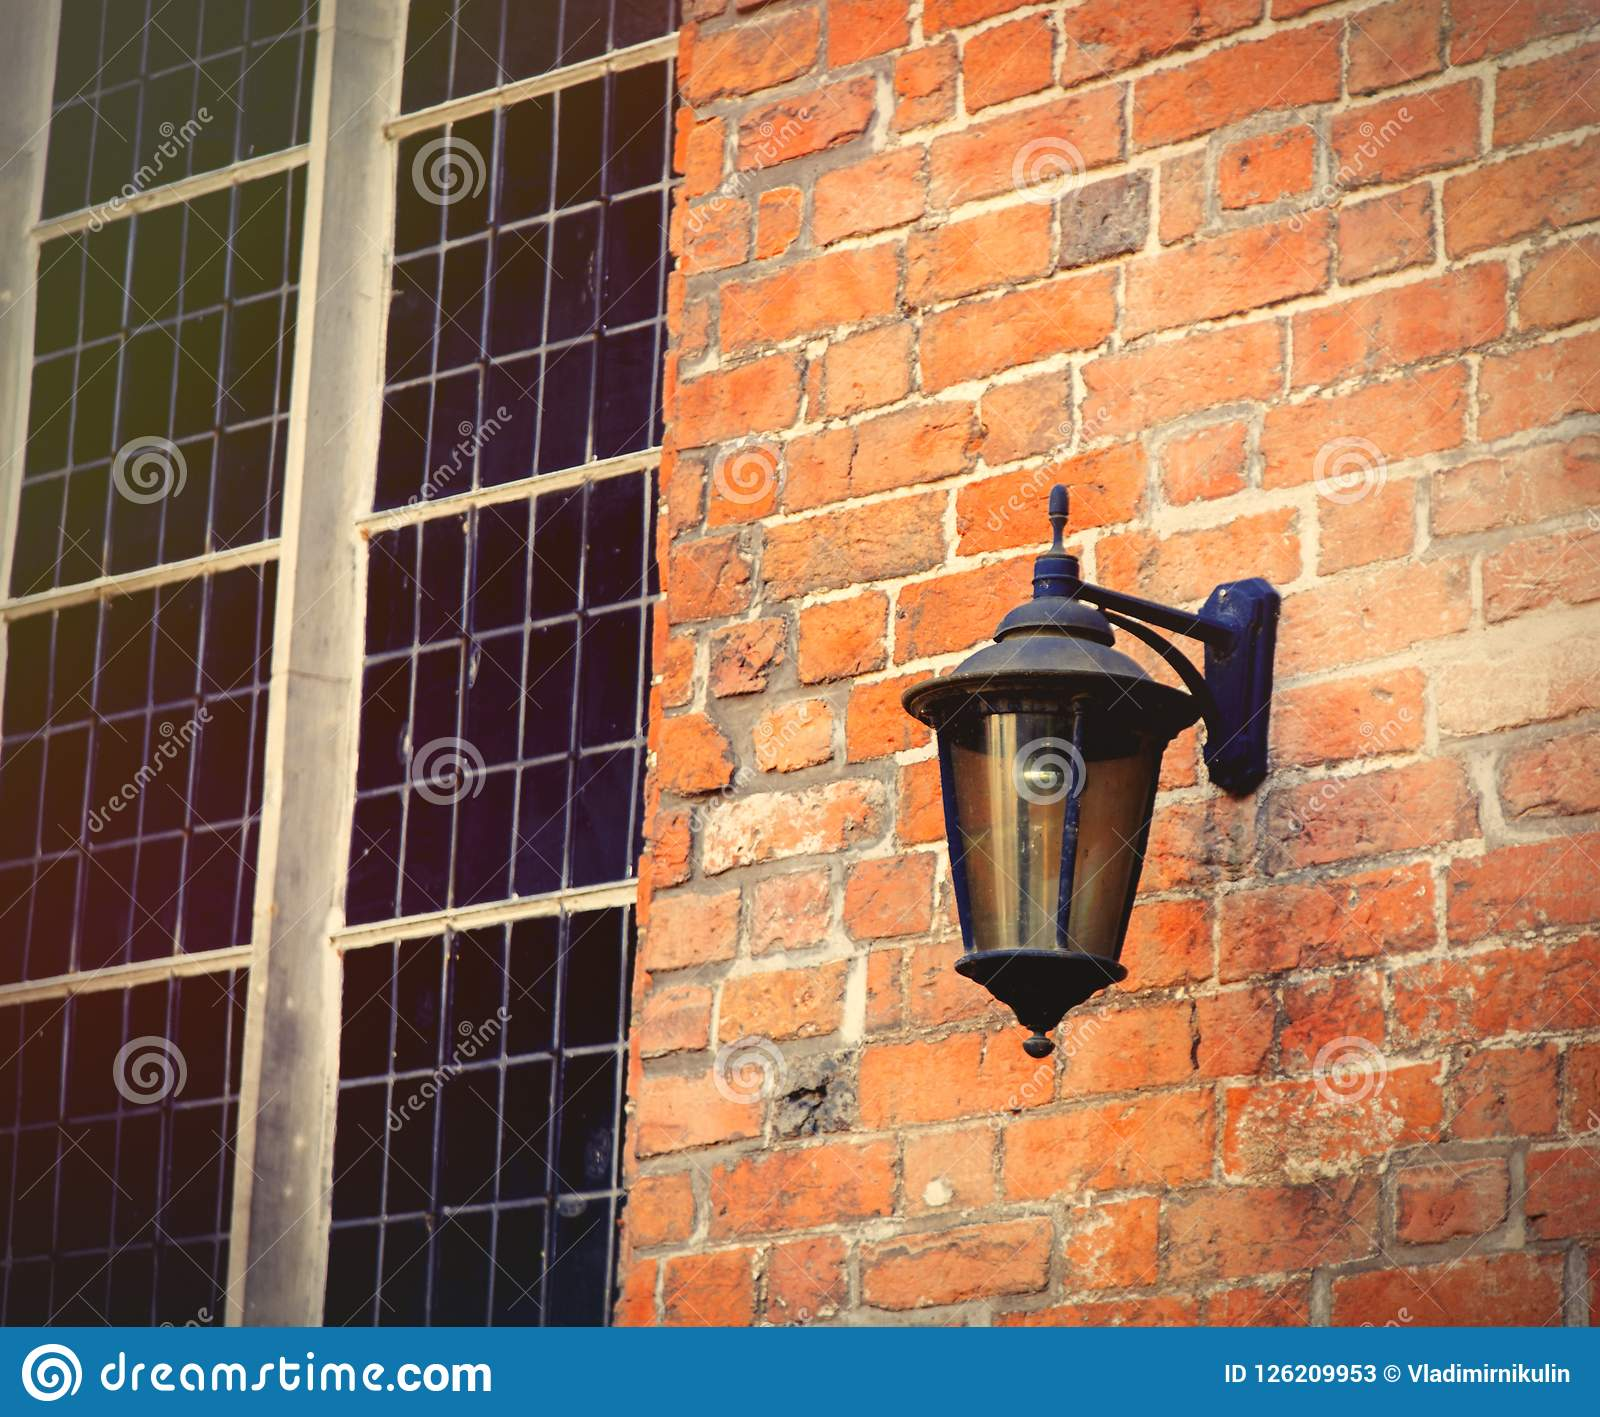 Lampen Bremen Old Lamp On Red Brick Wall Near Window Stock Image Image Of Wall